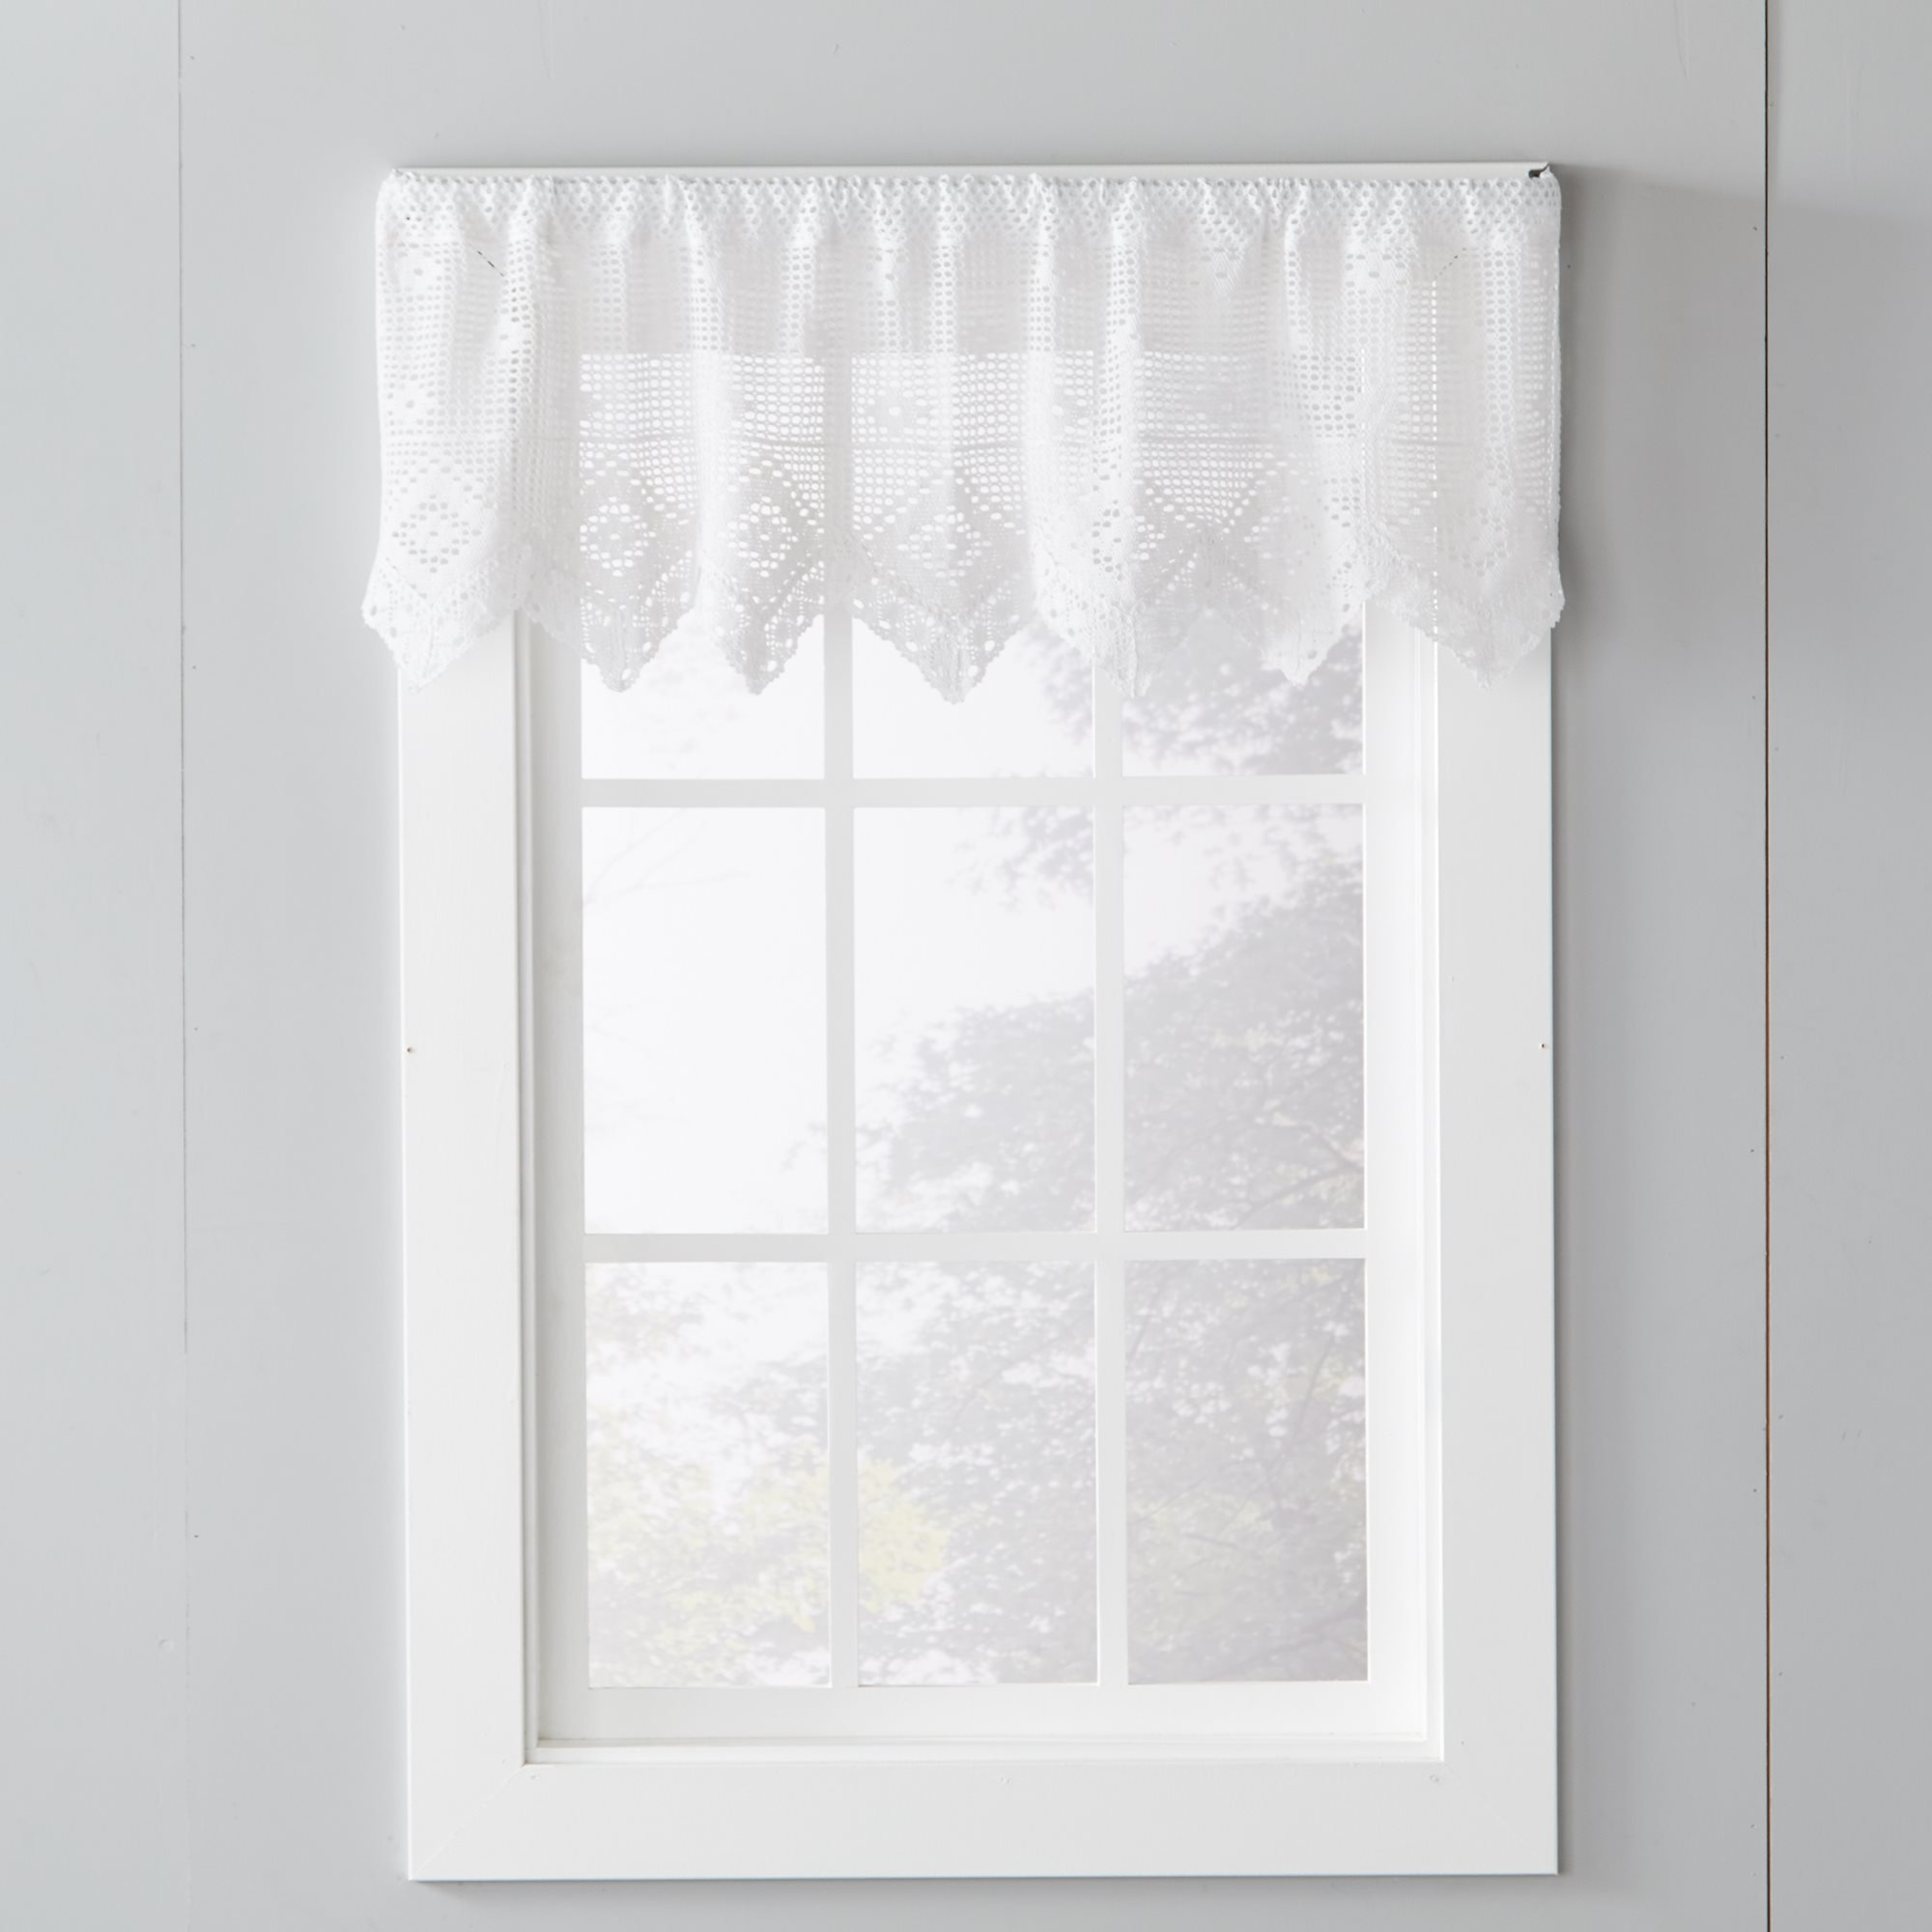 Saturday Knight Ltd Bless Our Home Window Valance With 1 5 Rod 56x13 Multi For Sale Online Ebay